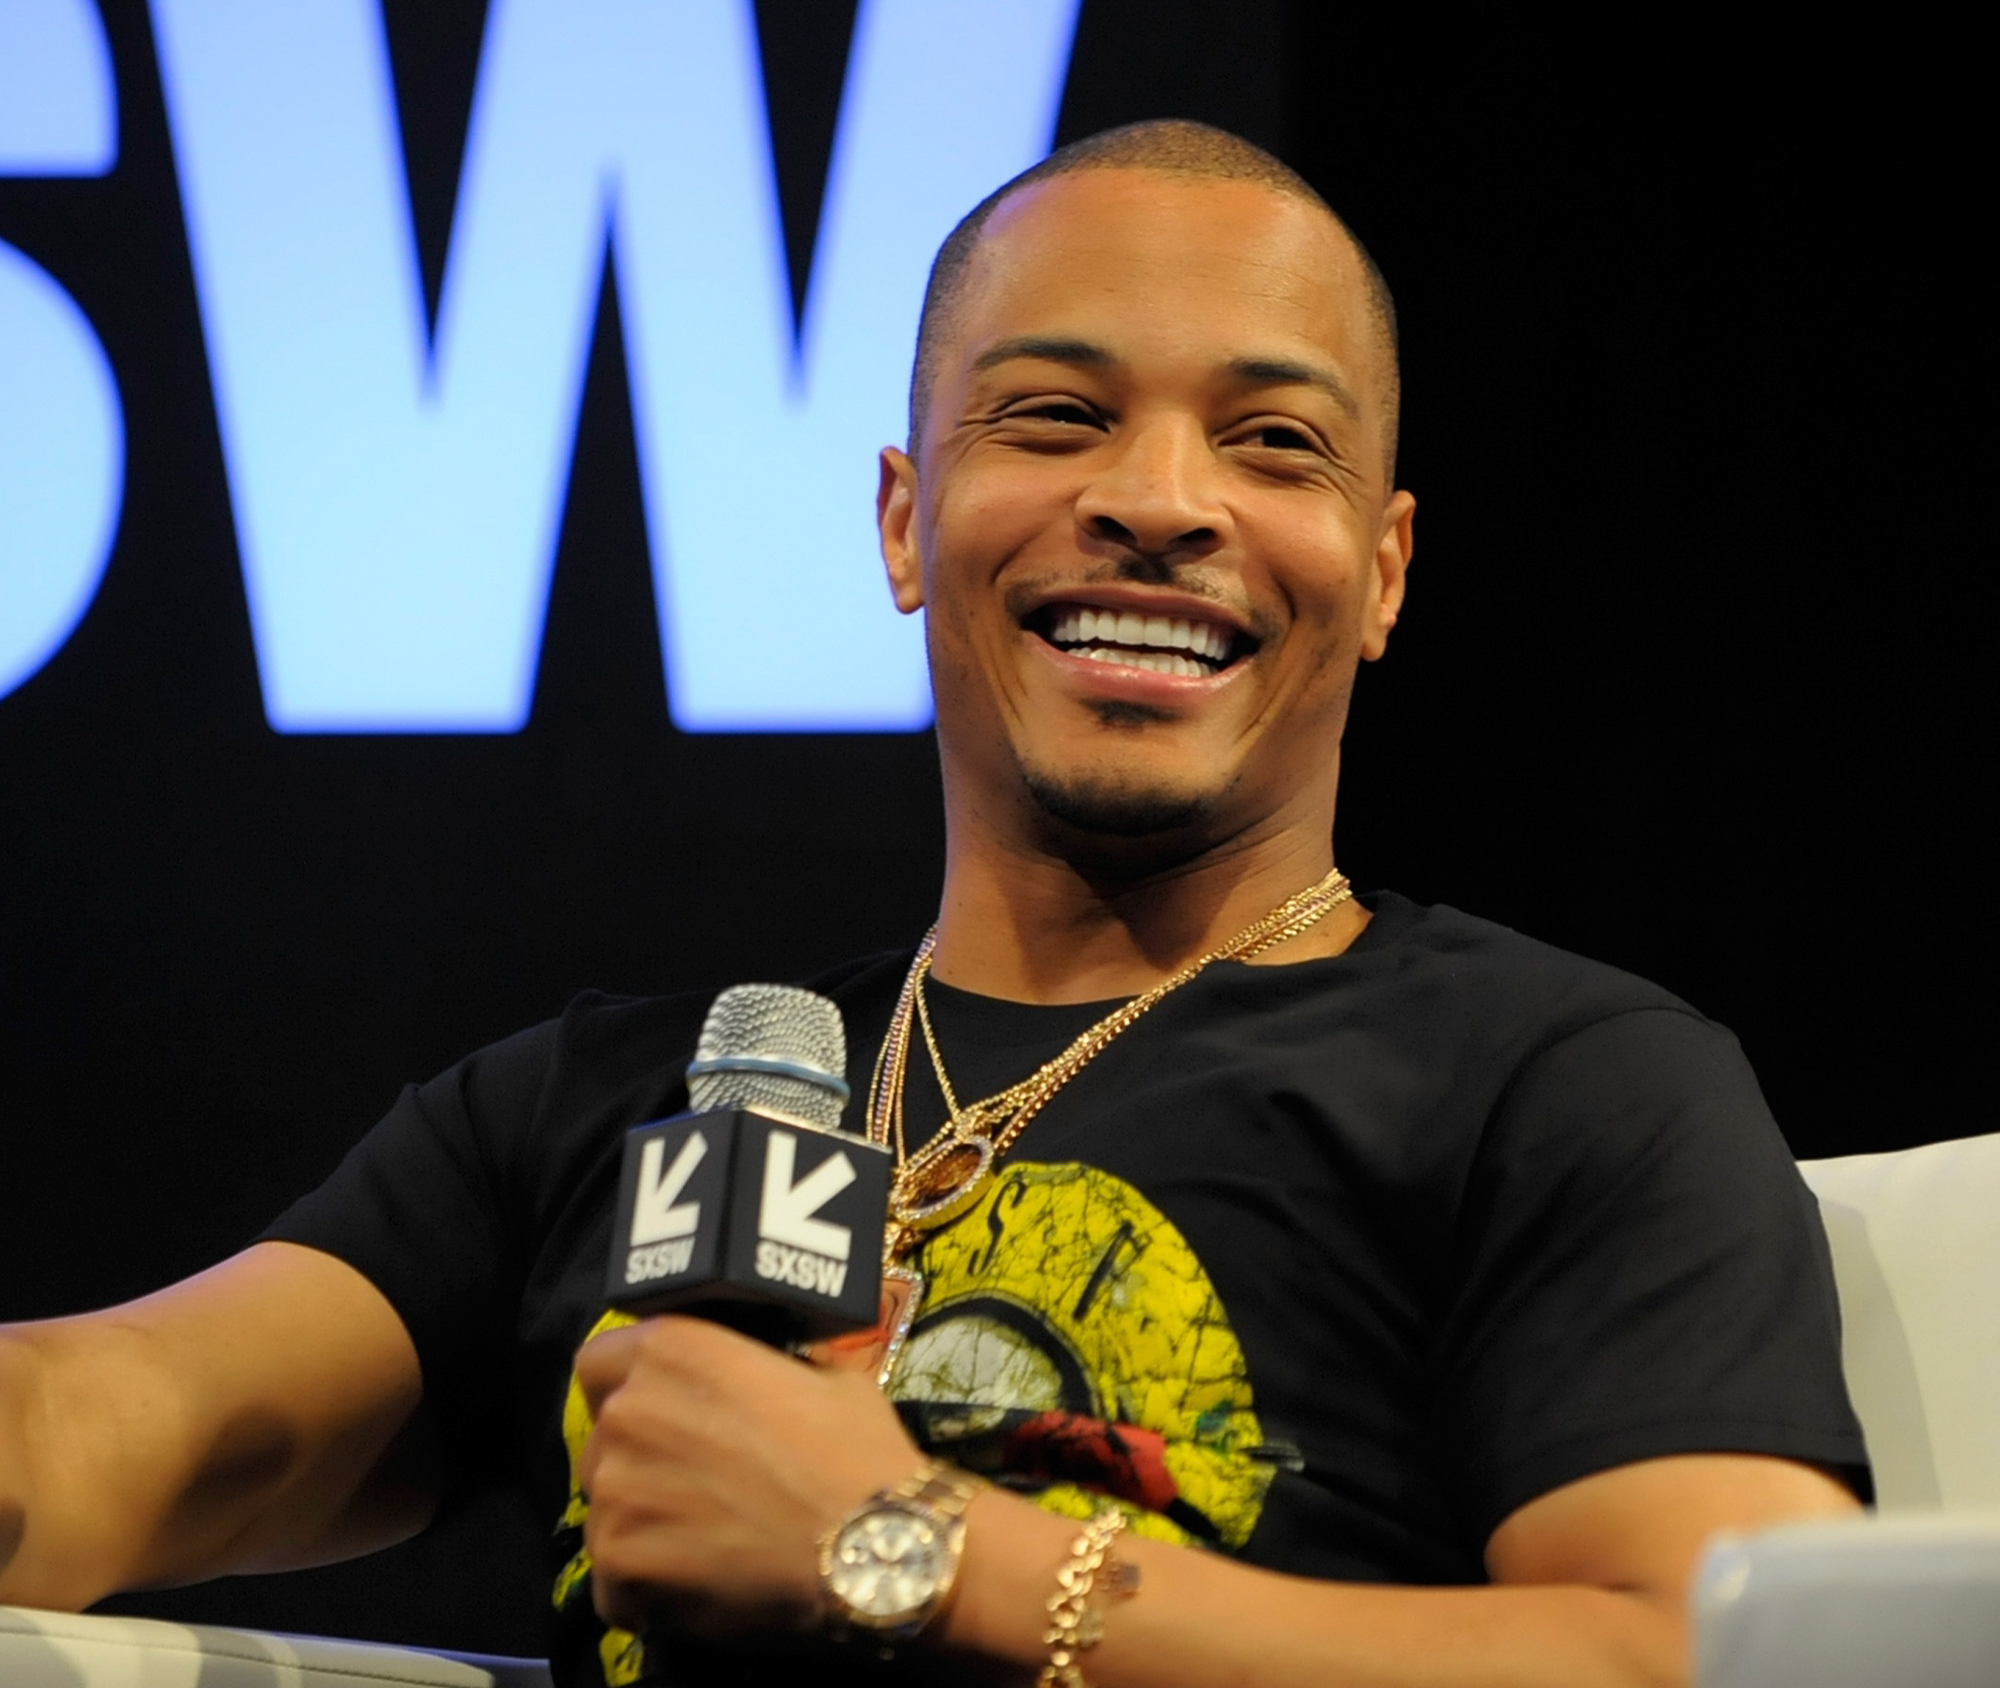 A Conversation with T.I. - 2017 SXSW Conference and Festivals